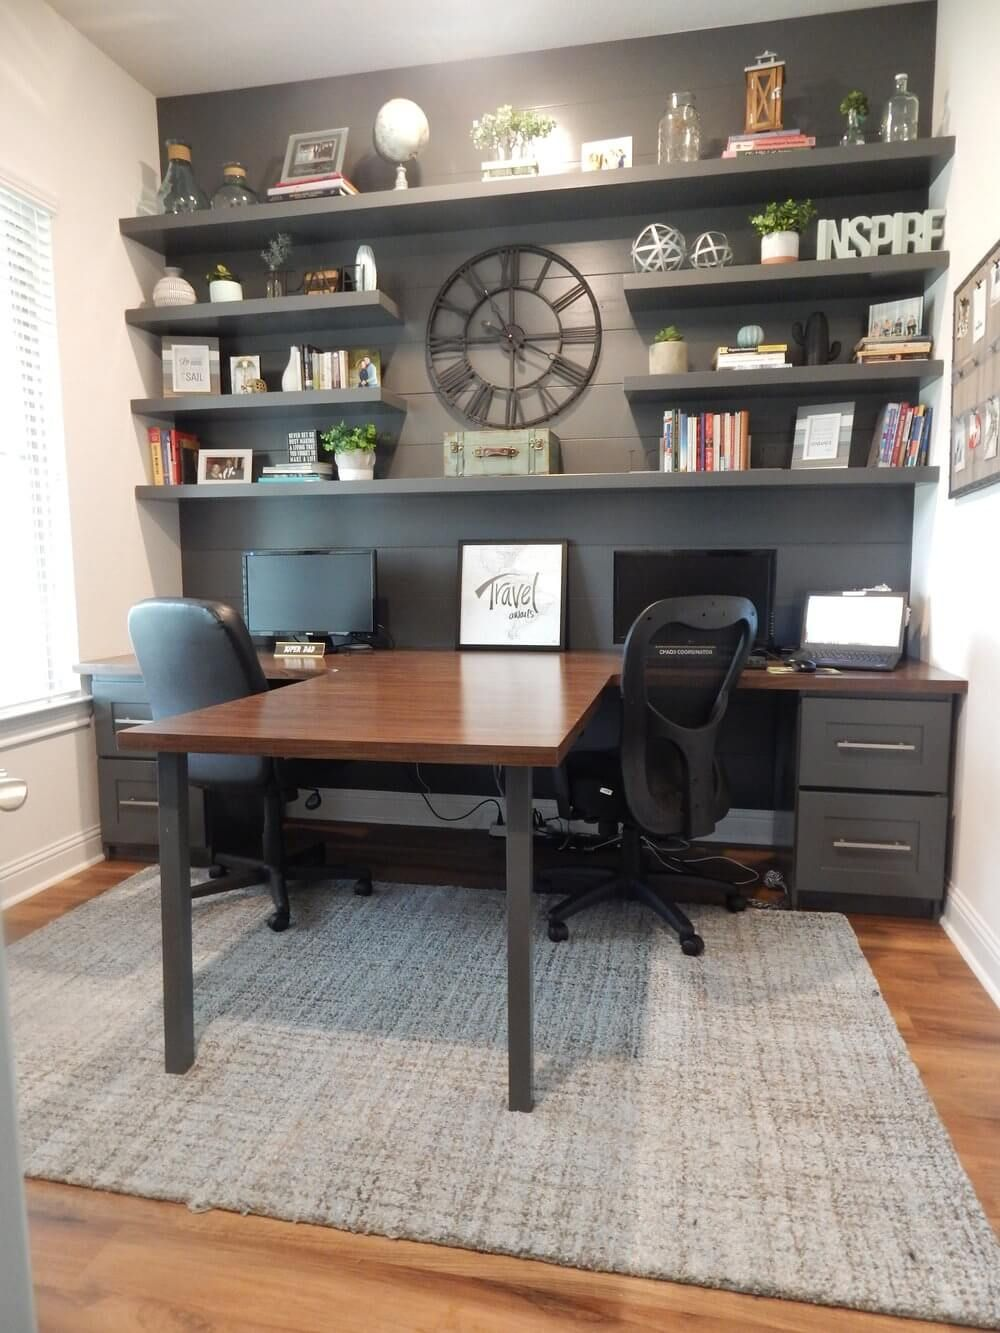 17 Terrific Home Office Ideas That Will Inspire Productivity In 2020 Home Office Decor Home Office Design Home Office Space